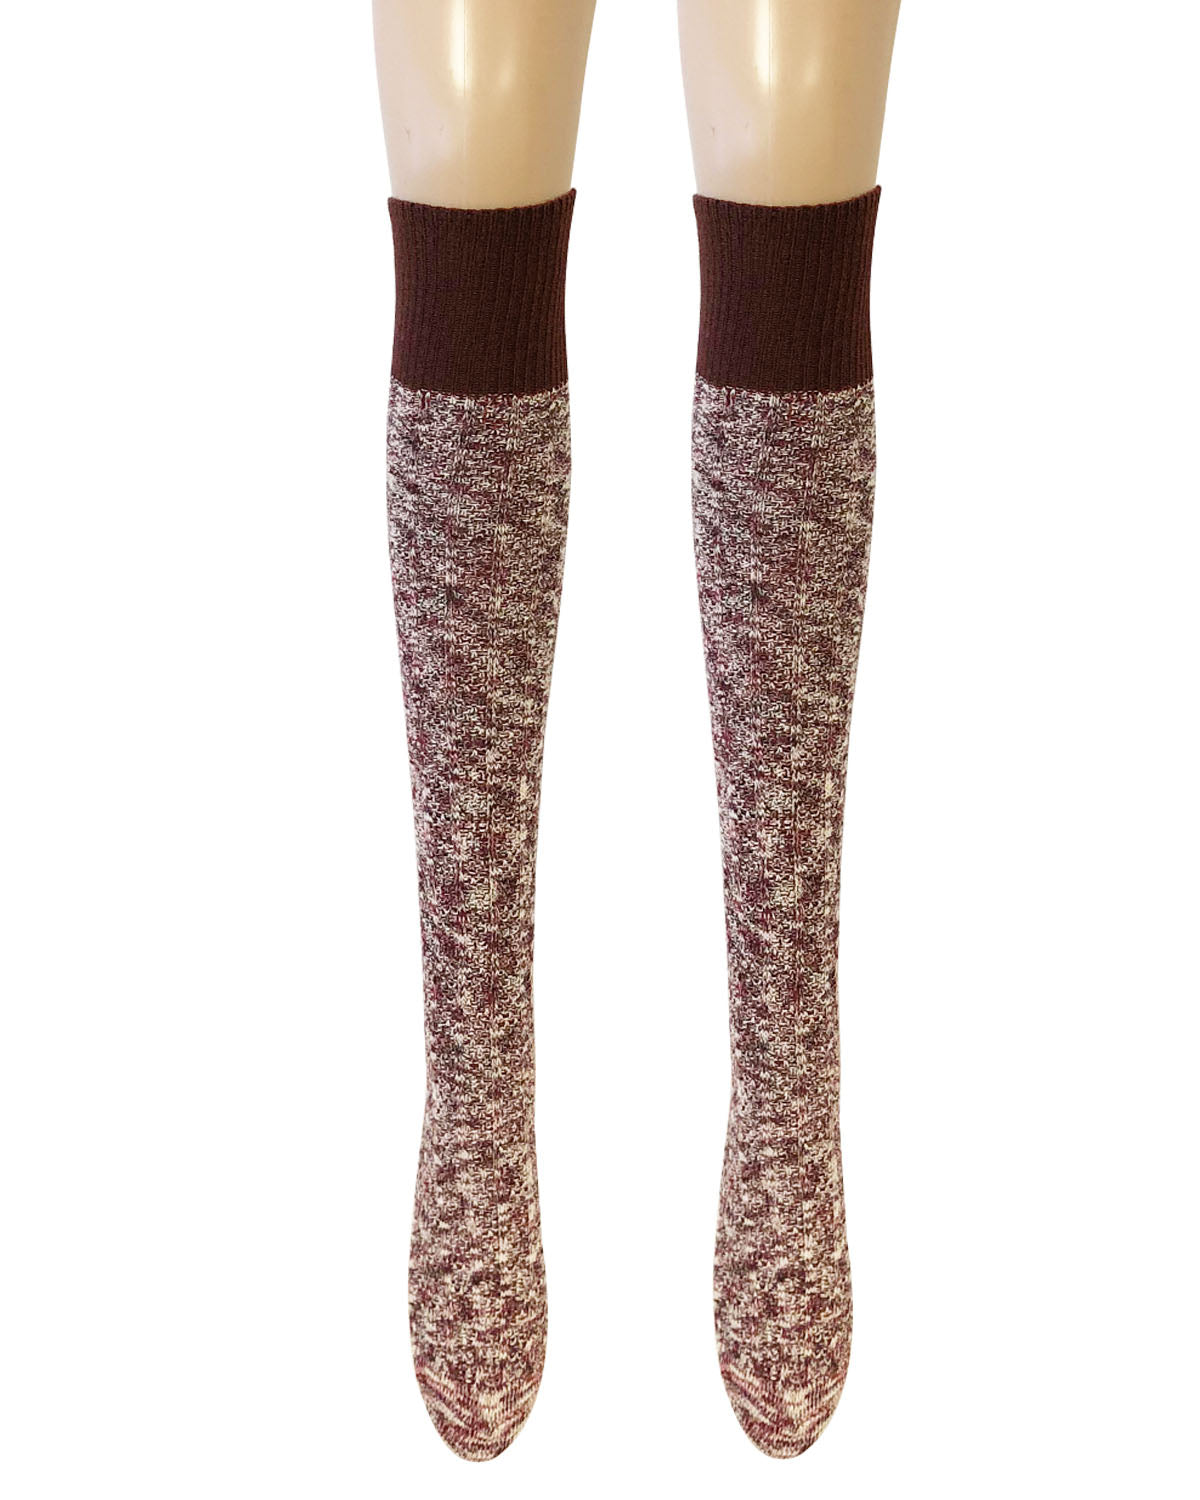 Wrapables® Women's Warm Knitted Vintage Knee High Boot Socks